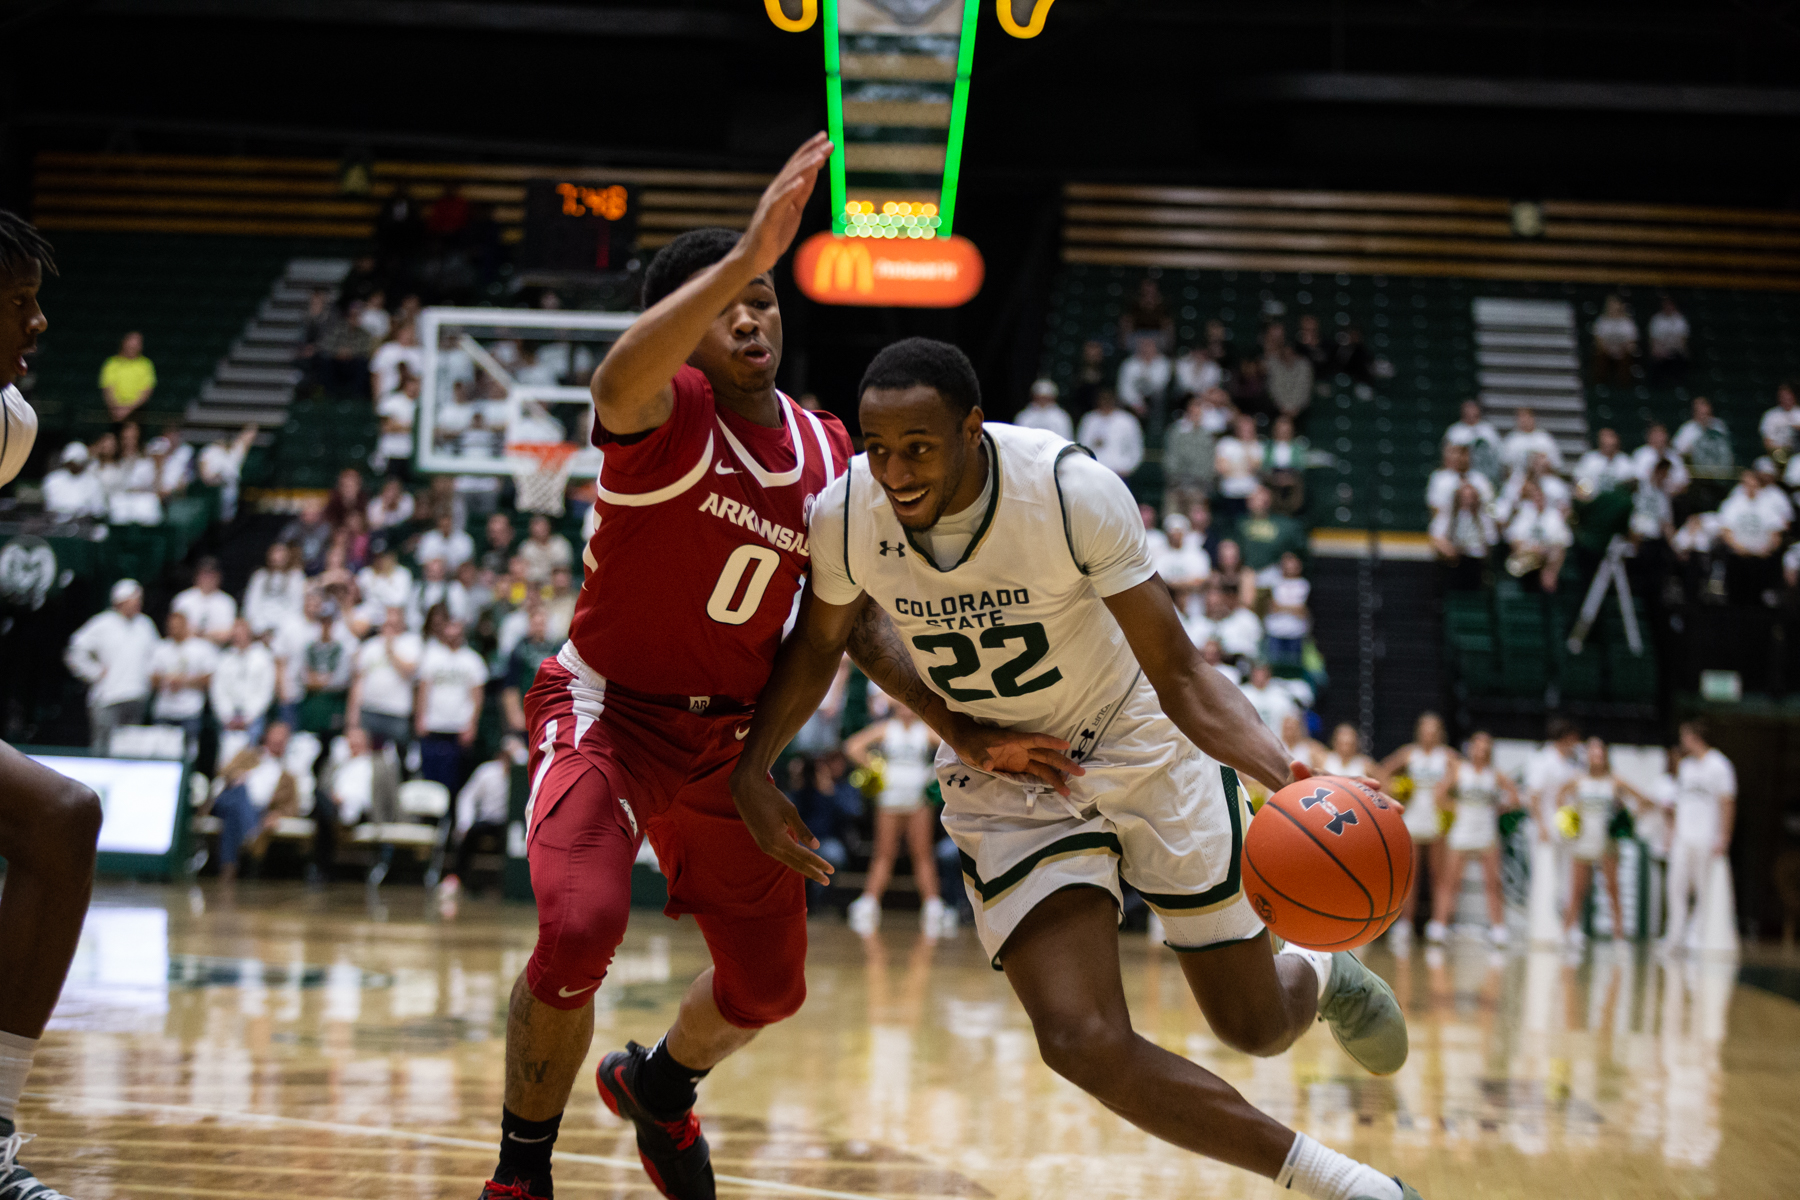 online retailer 82890 42ab7 Rams drop fourth straight, dominated by Arkansas at Moby Arena